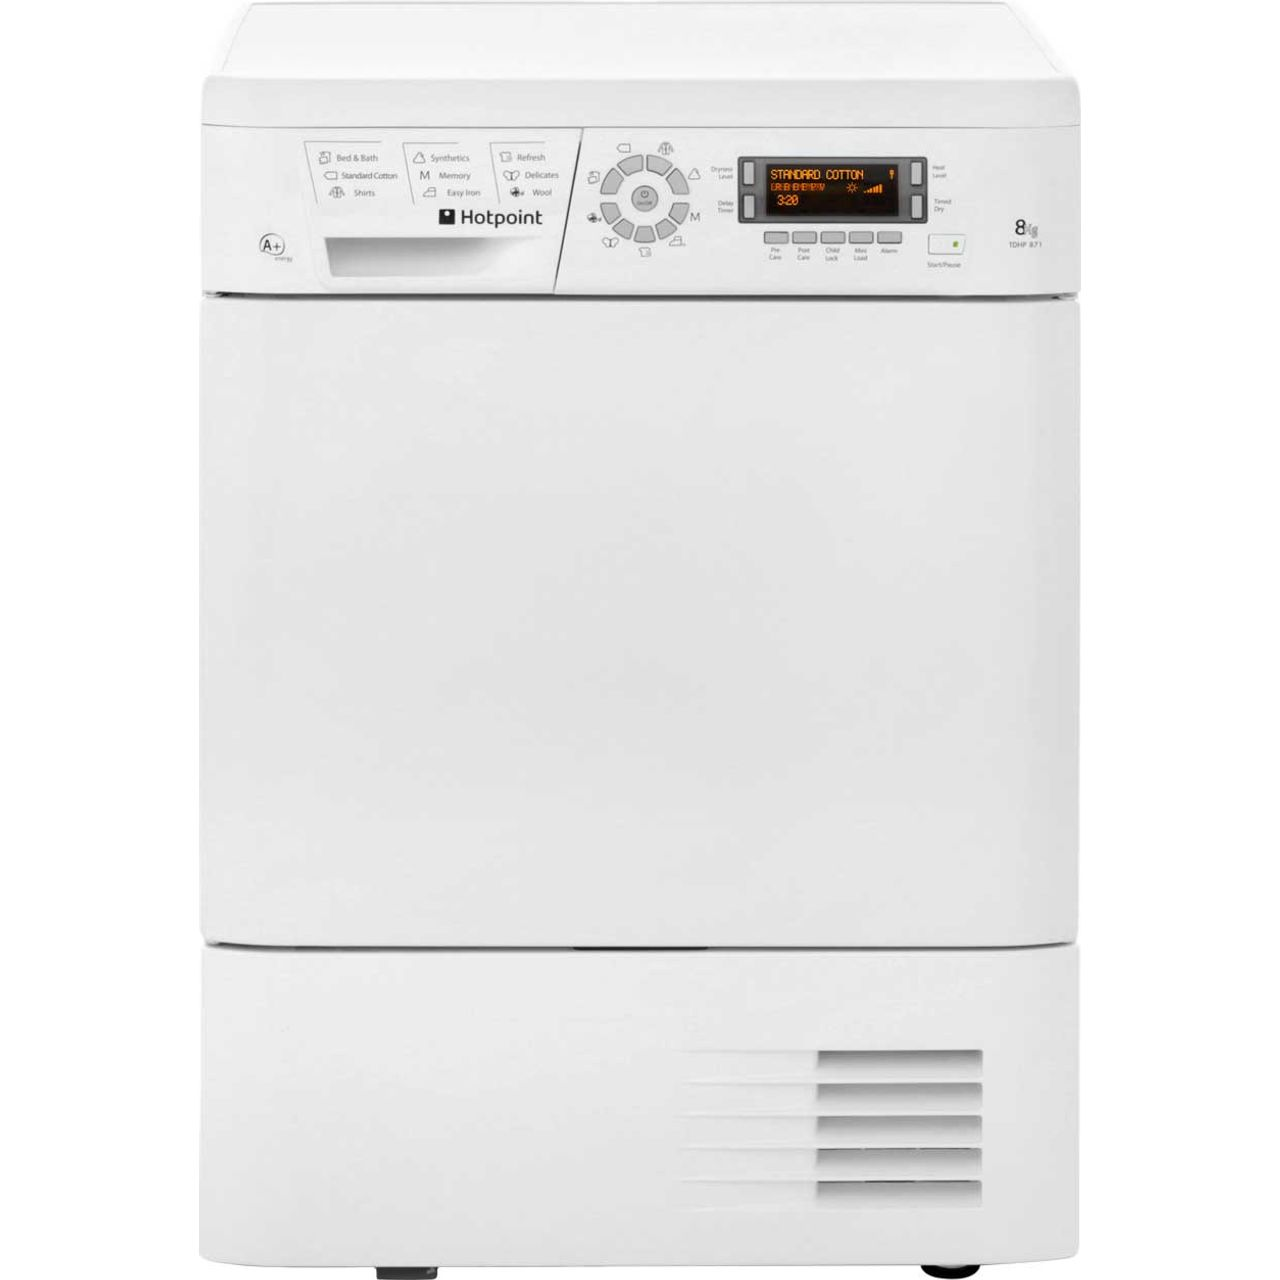 Hotpoint TDHP871RP Heat Pump Tumble Dryer - White